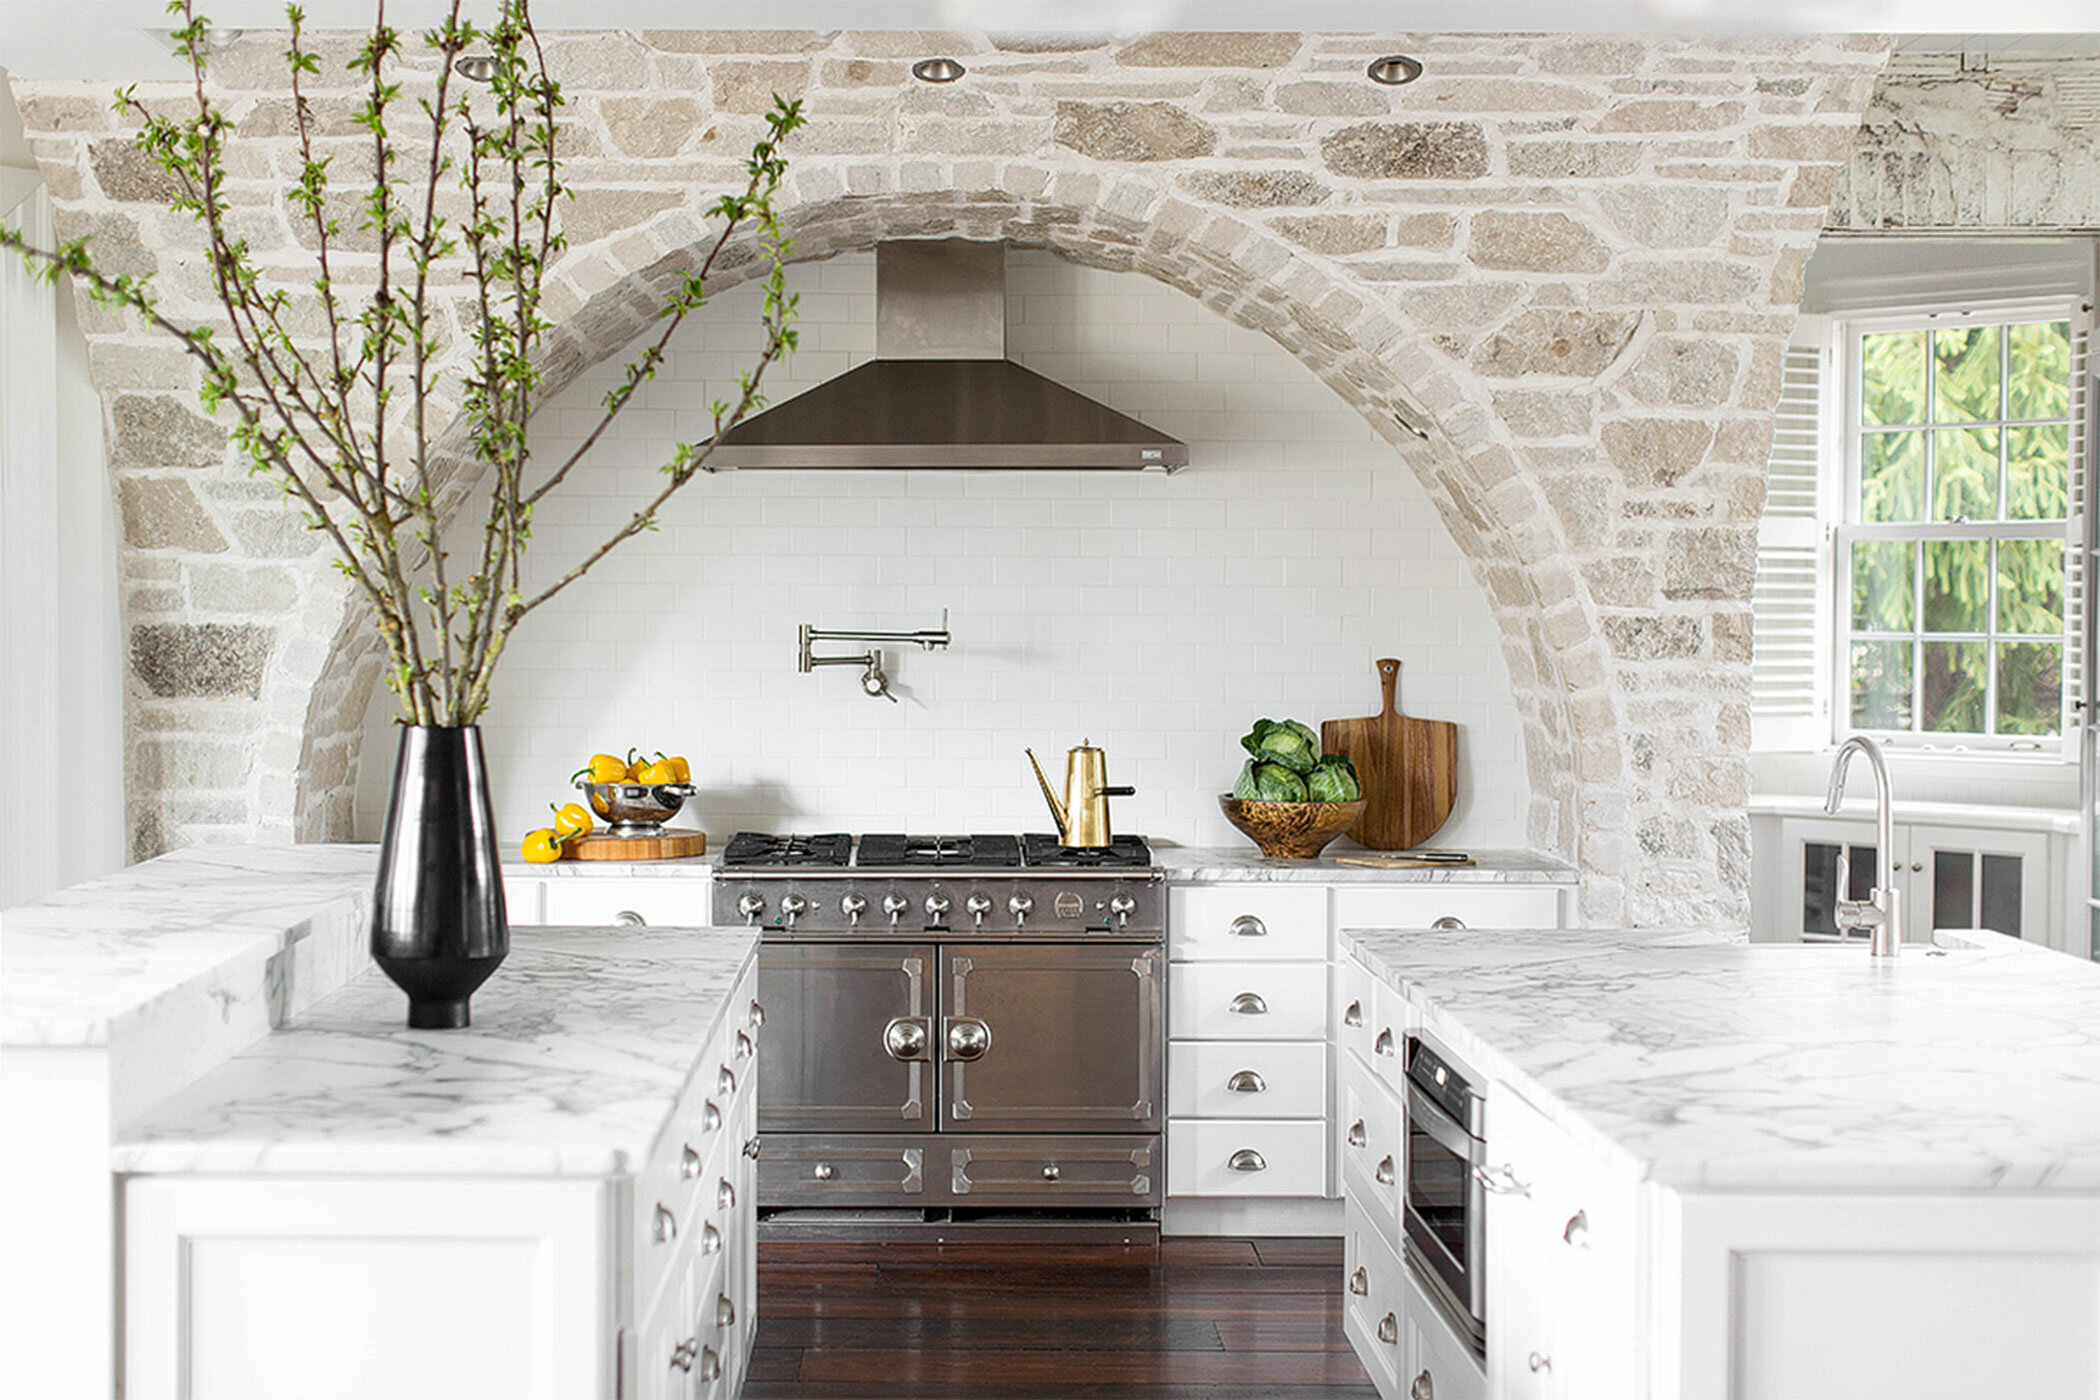 Kitchen Trends For 2020.5 Kitchen Trends To Try In 2020 Wayfair